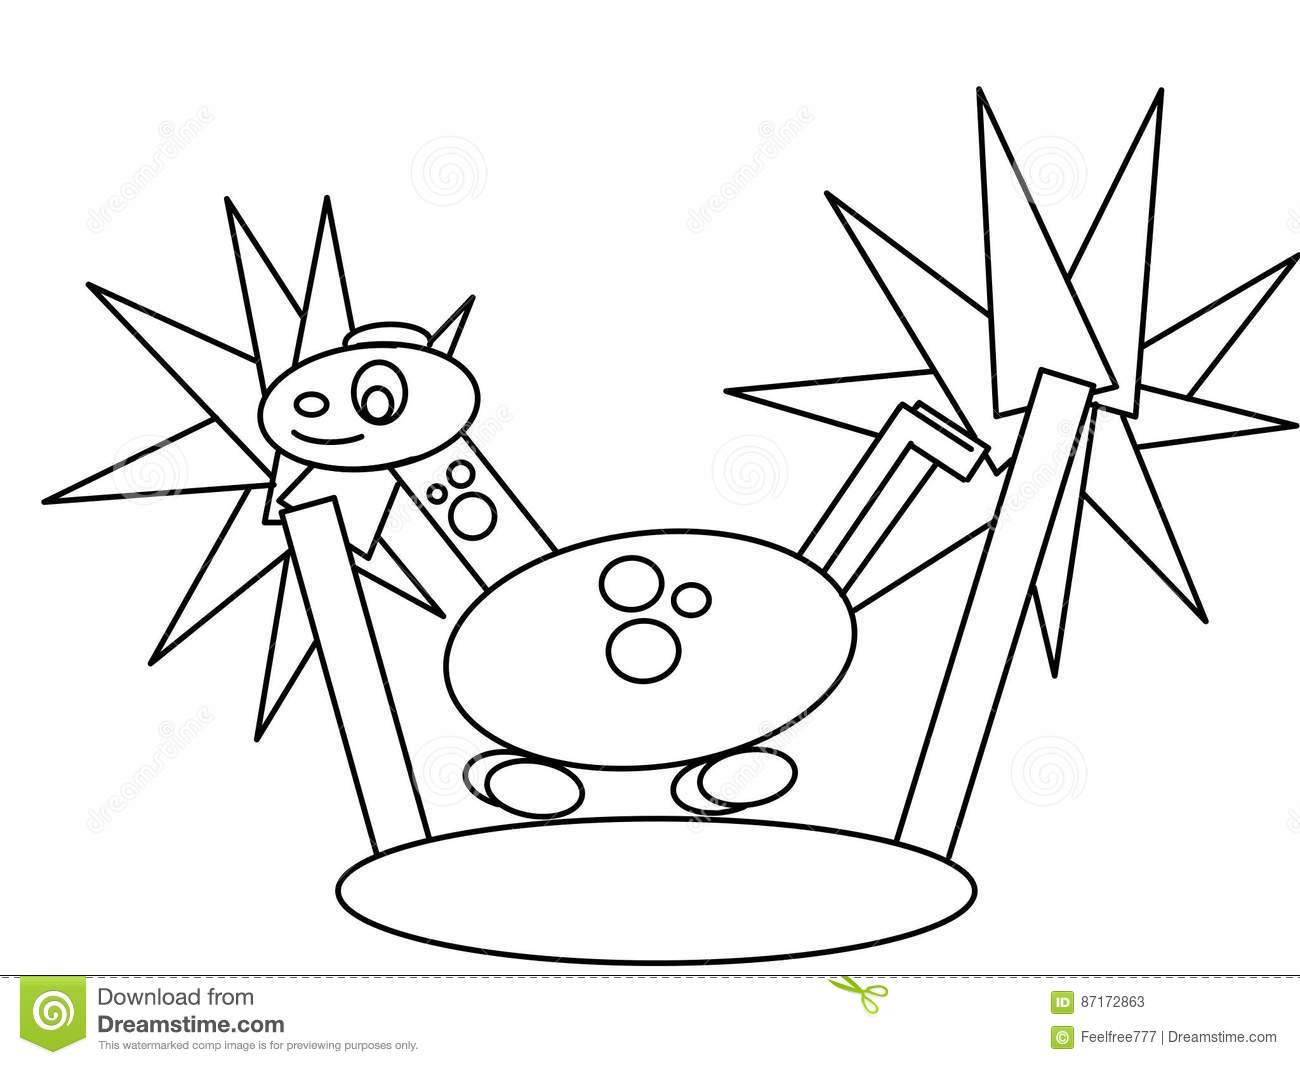 dinosaur high quality kids coloring pages very you can use work all your needs such as books web design presentations